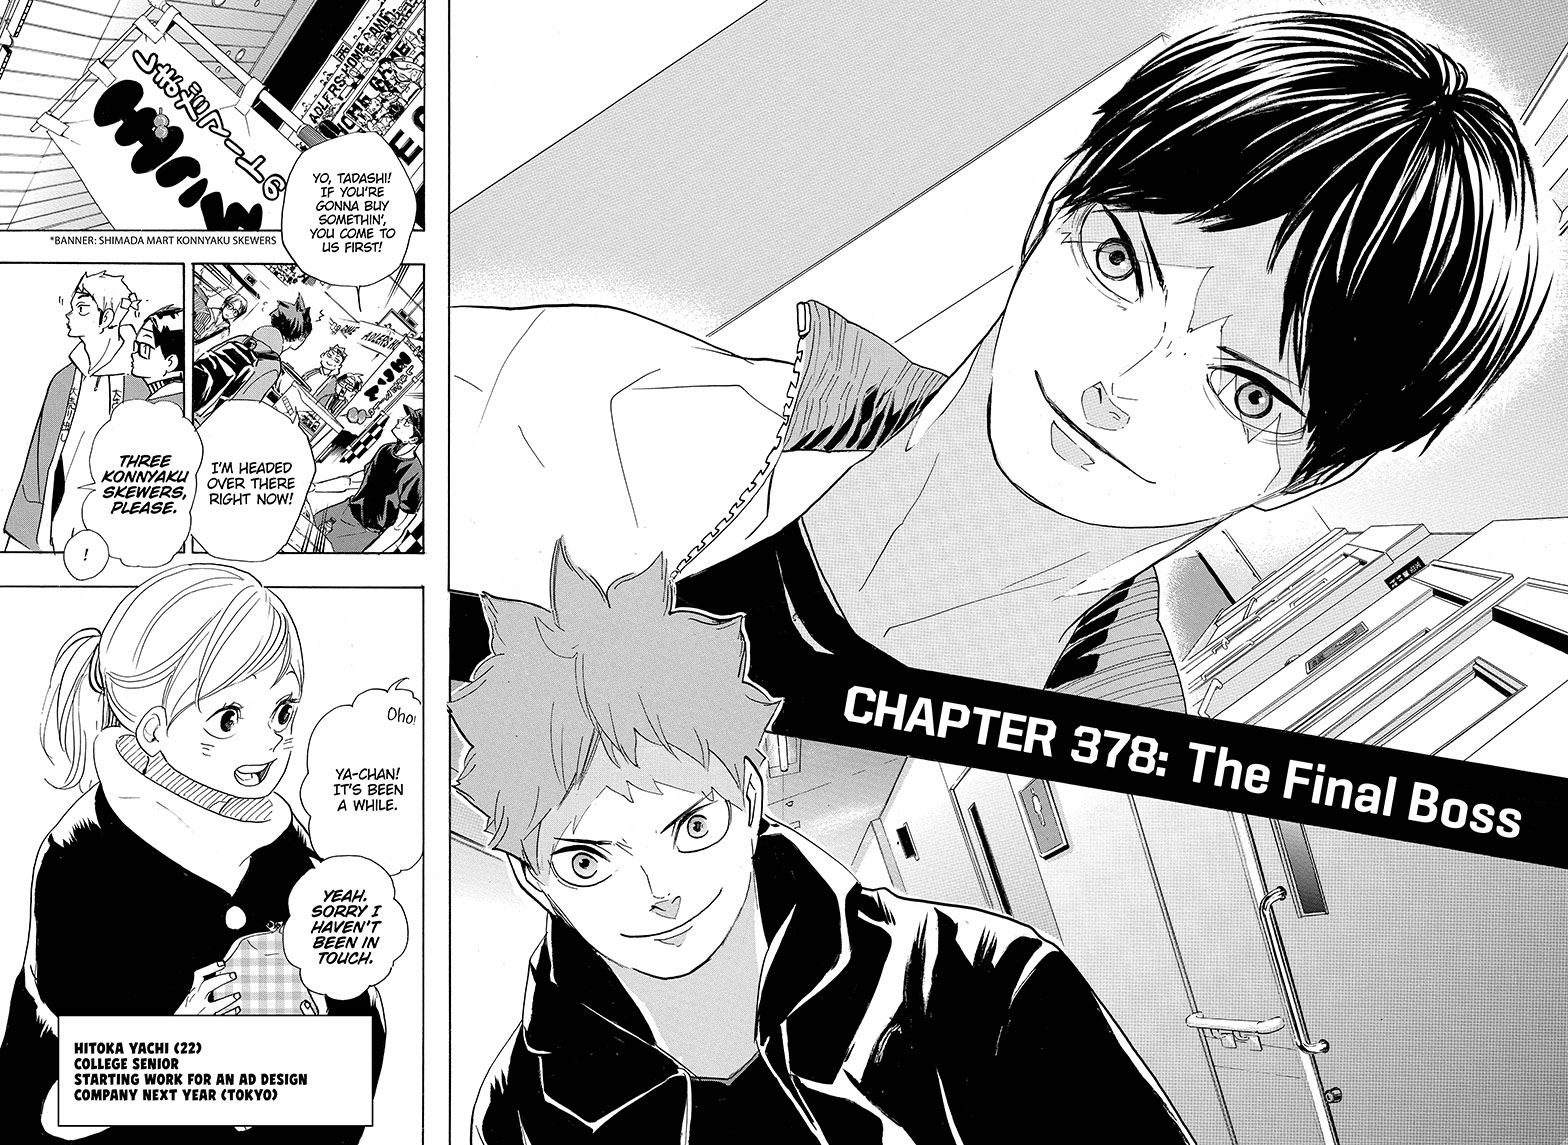 Read Haikyuu / Read free or become a member.